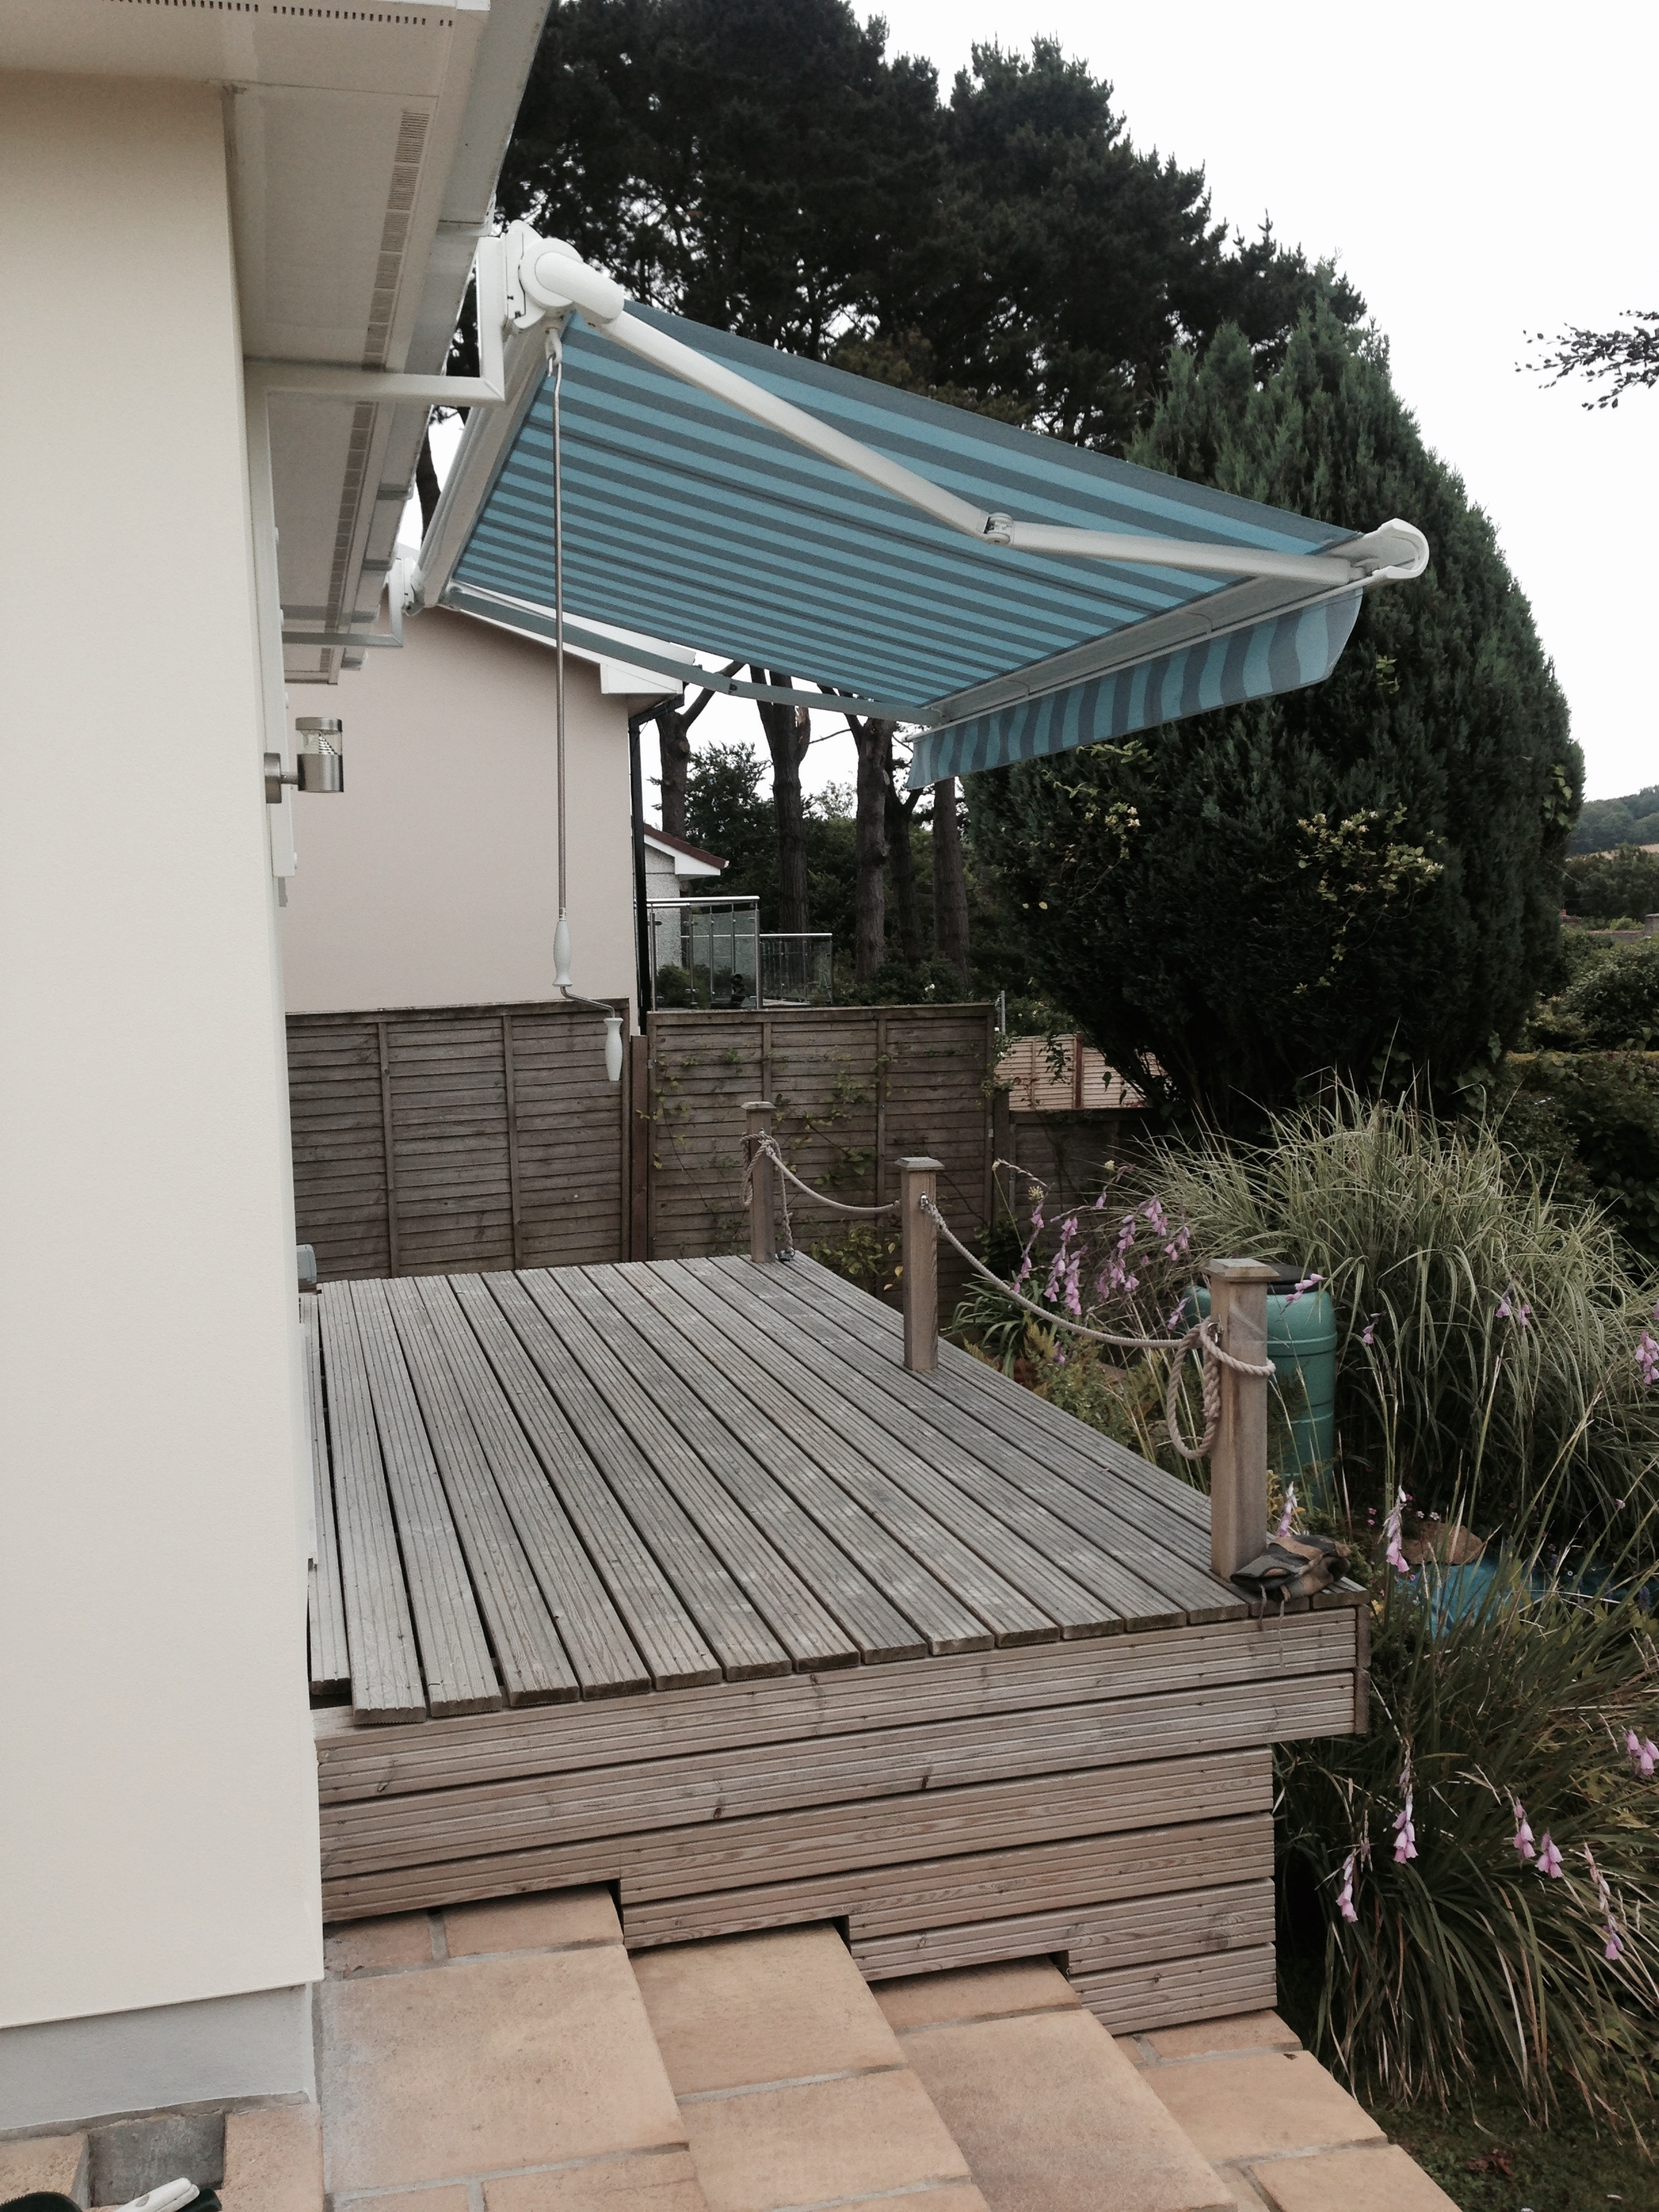 Markilux 990 Patio Awning Installed In Devoran South